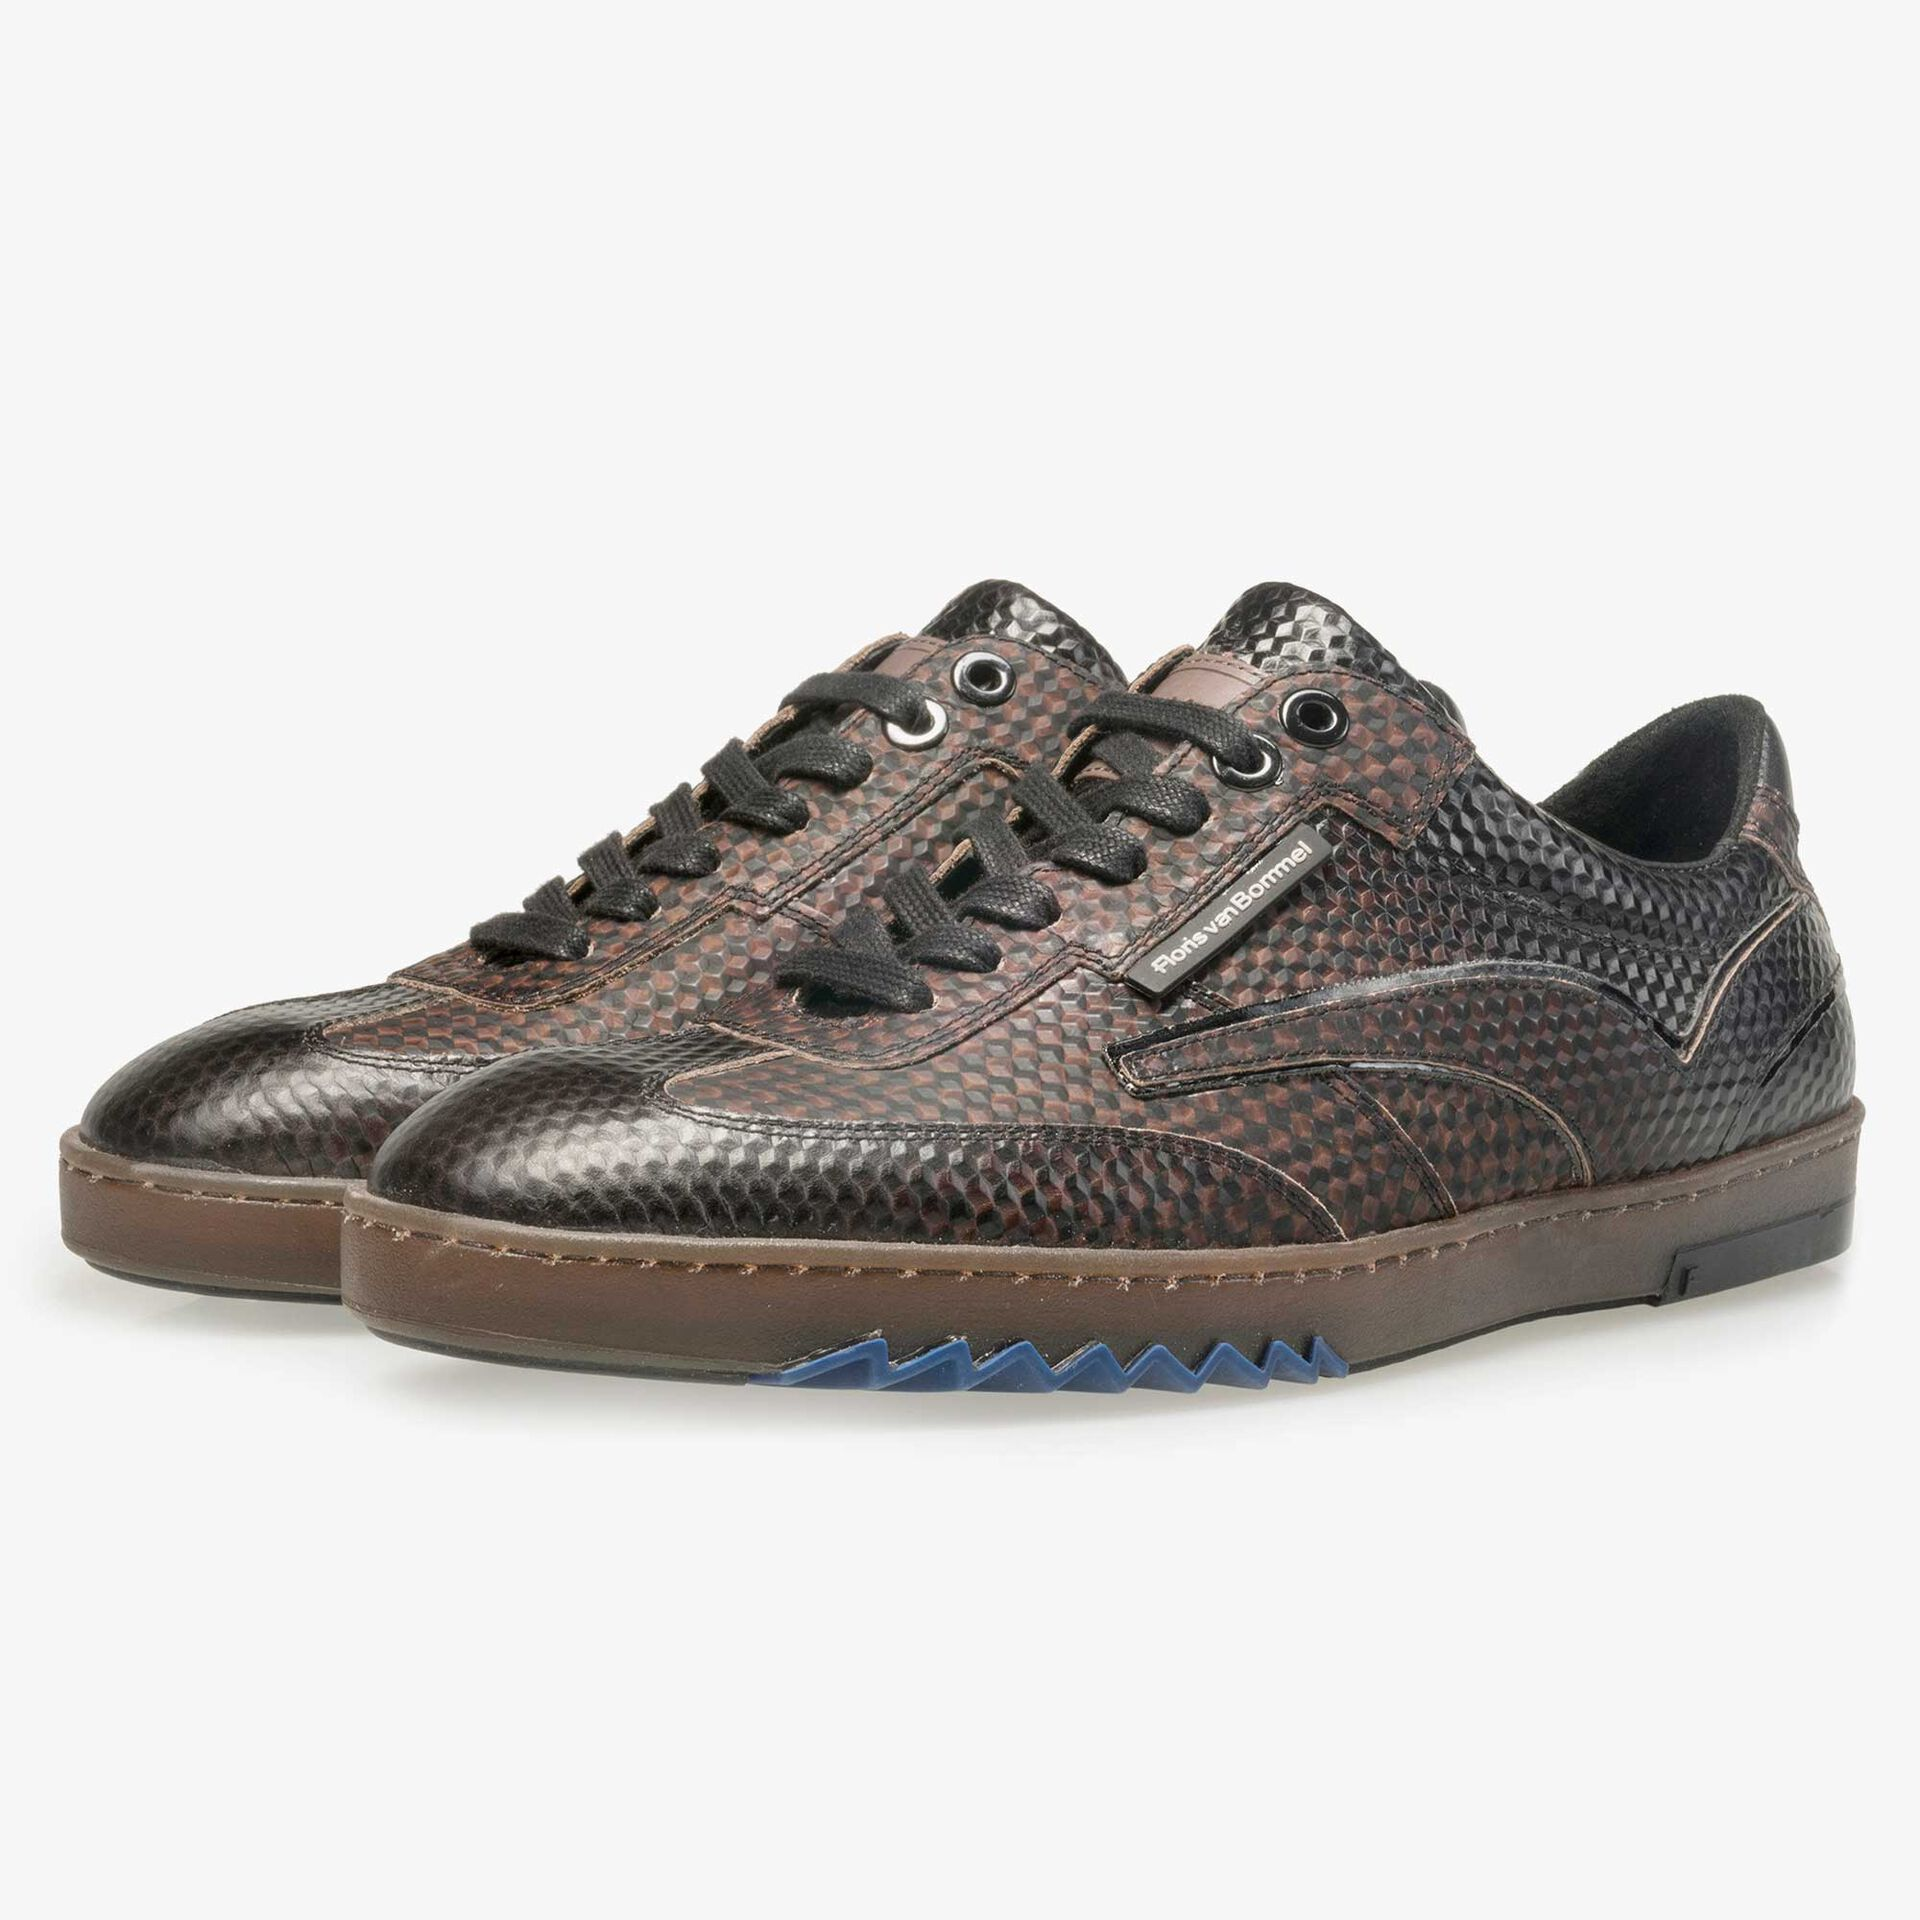 Floris van Bommel men's dark brown sneaker finished with a black print